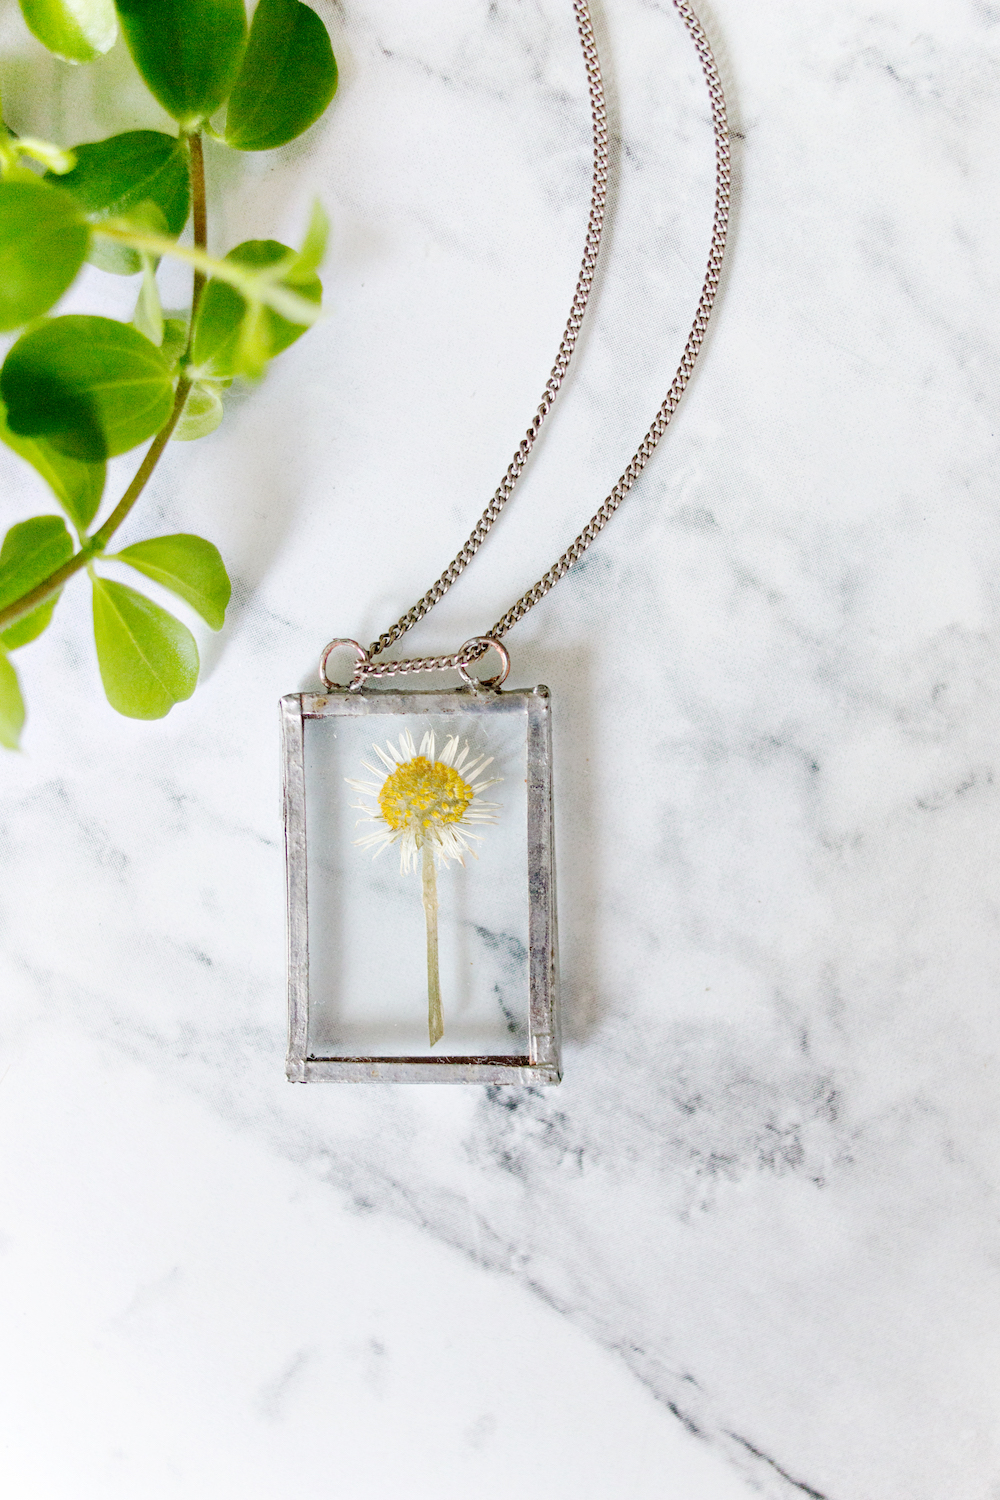 Soldered Flower Necklace